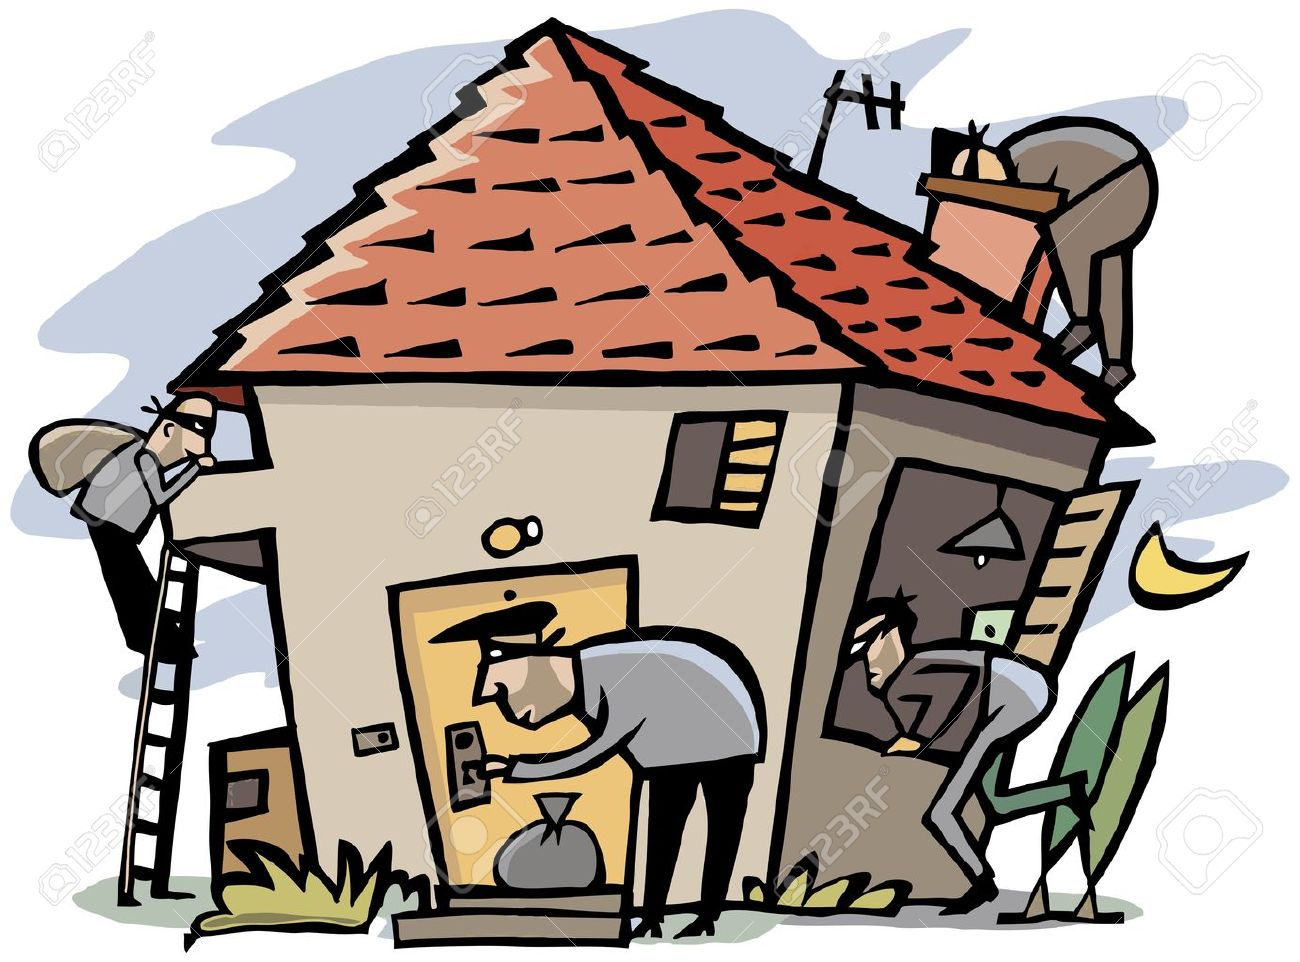 cartoon scene of 4 thieves break into house royalty free cliparts rh 123rf com burglar clip art burglary clip art